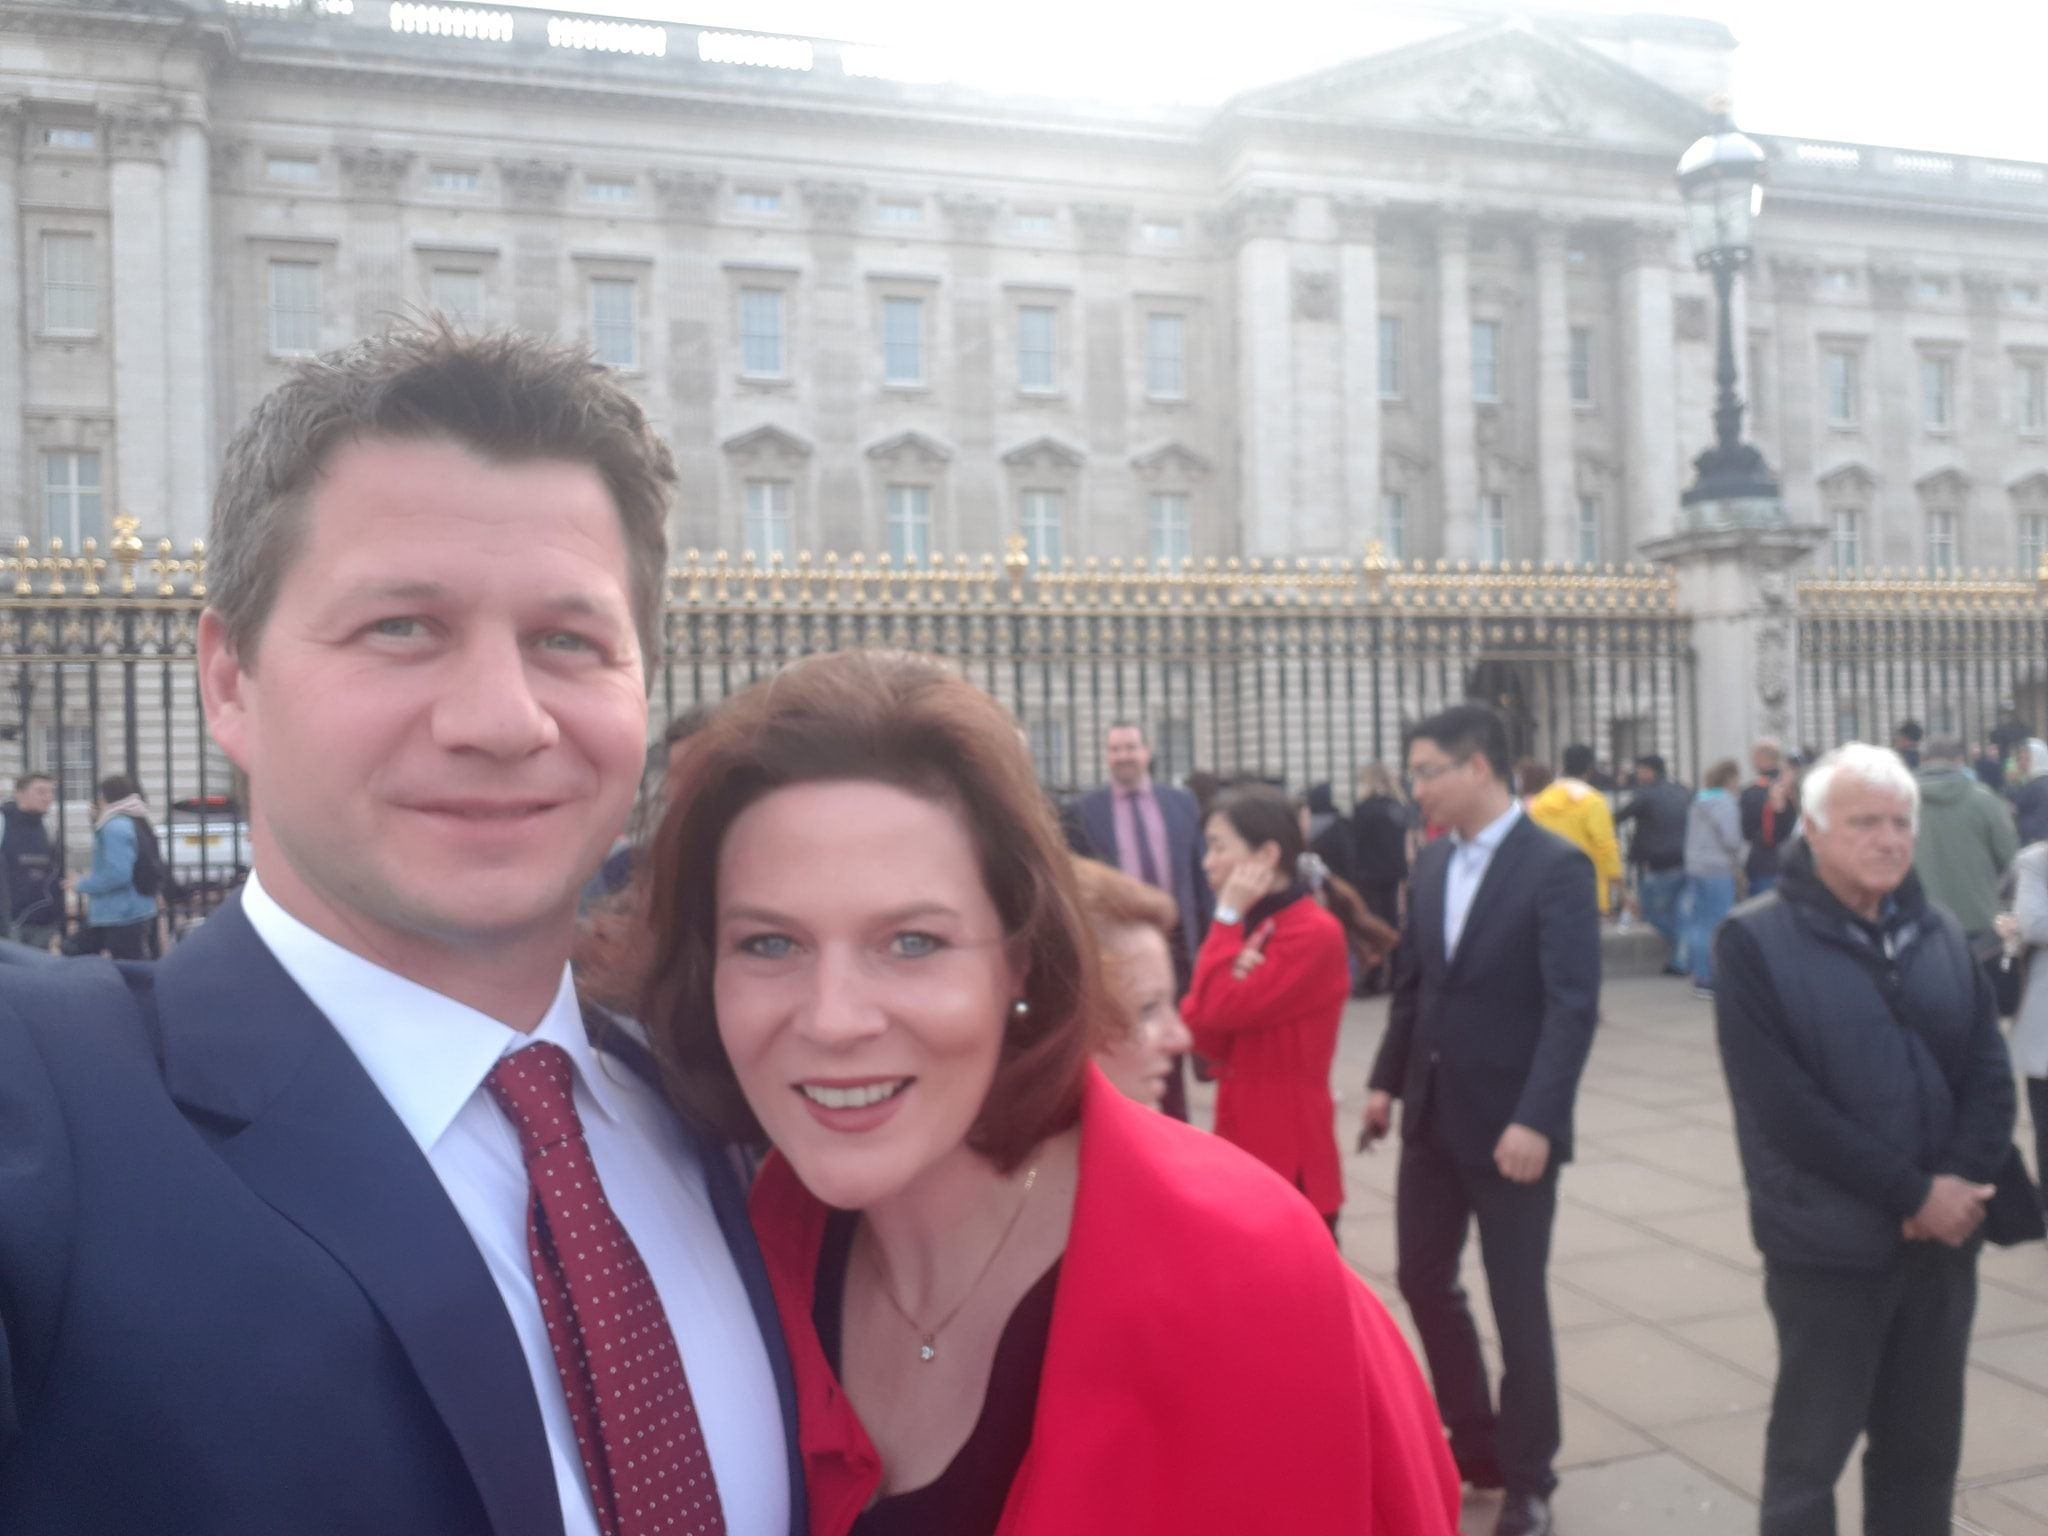 Above: Hannah and Jack Dale, co-owners of Wrendale Designs outside Buckingham Palace.